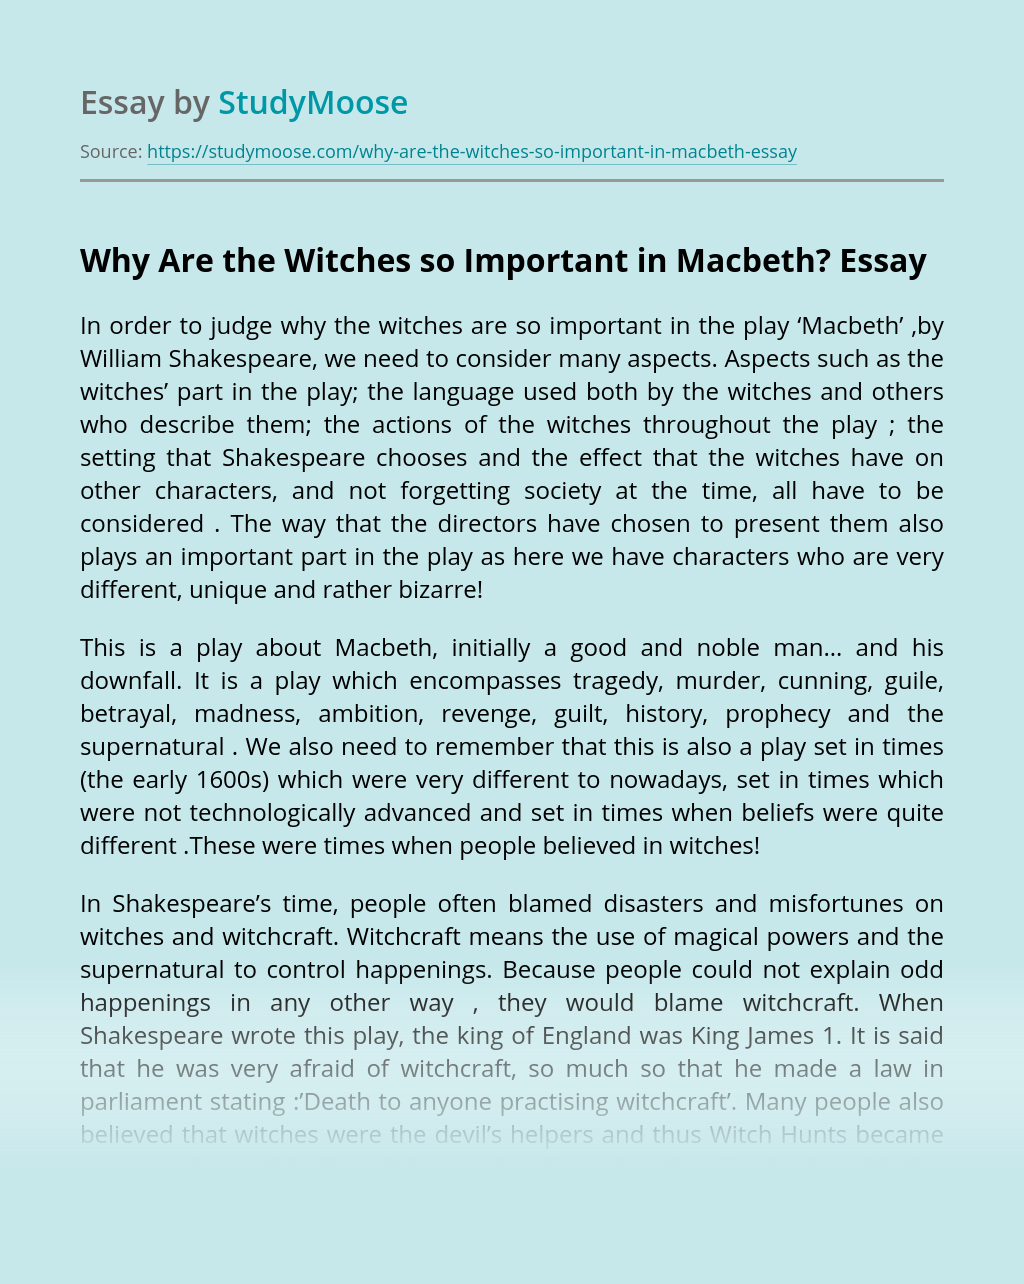 Why Are the Witches so Important in Macbeth?